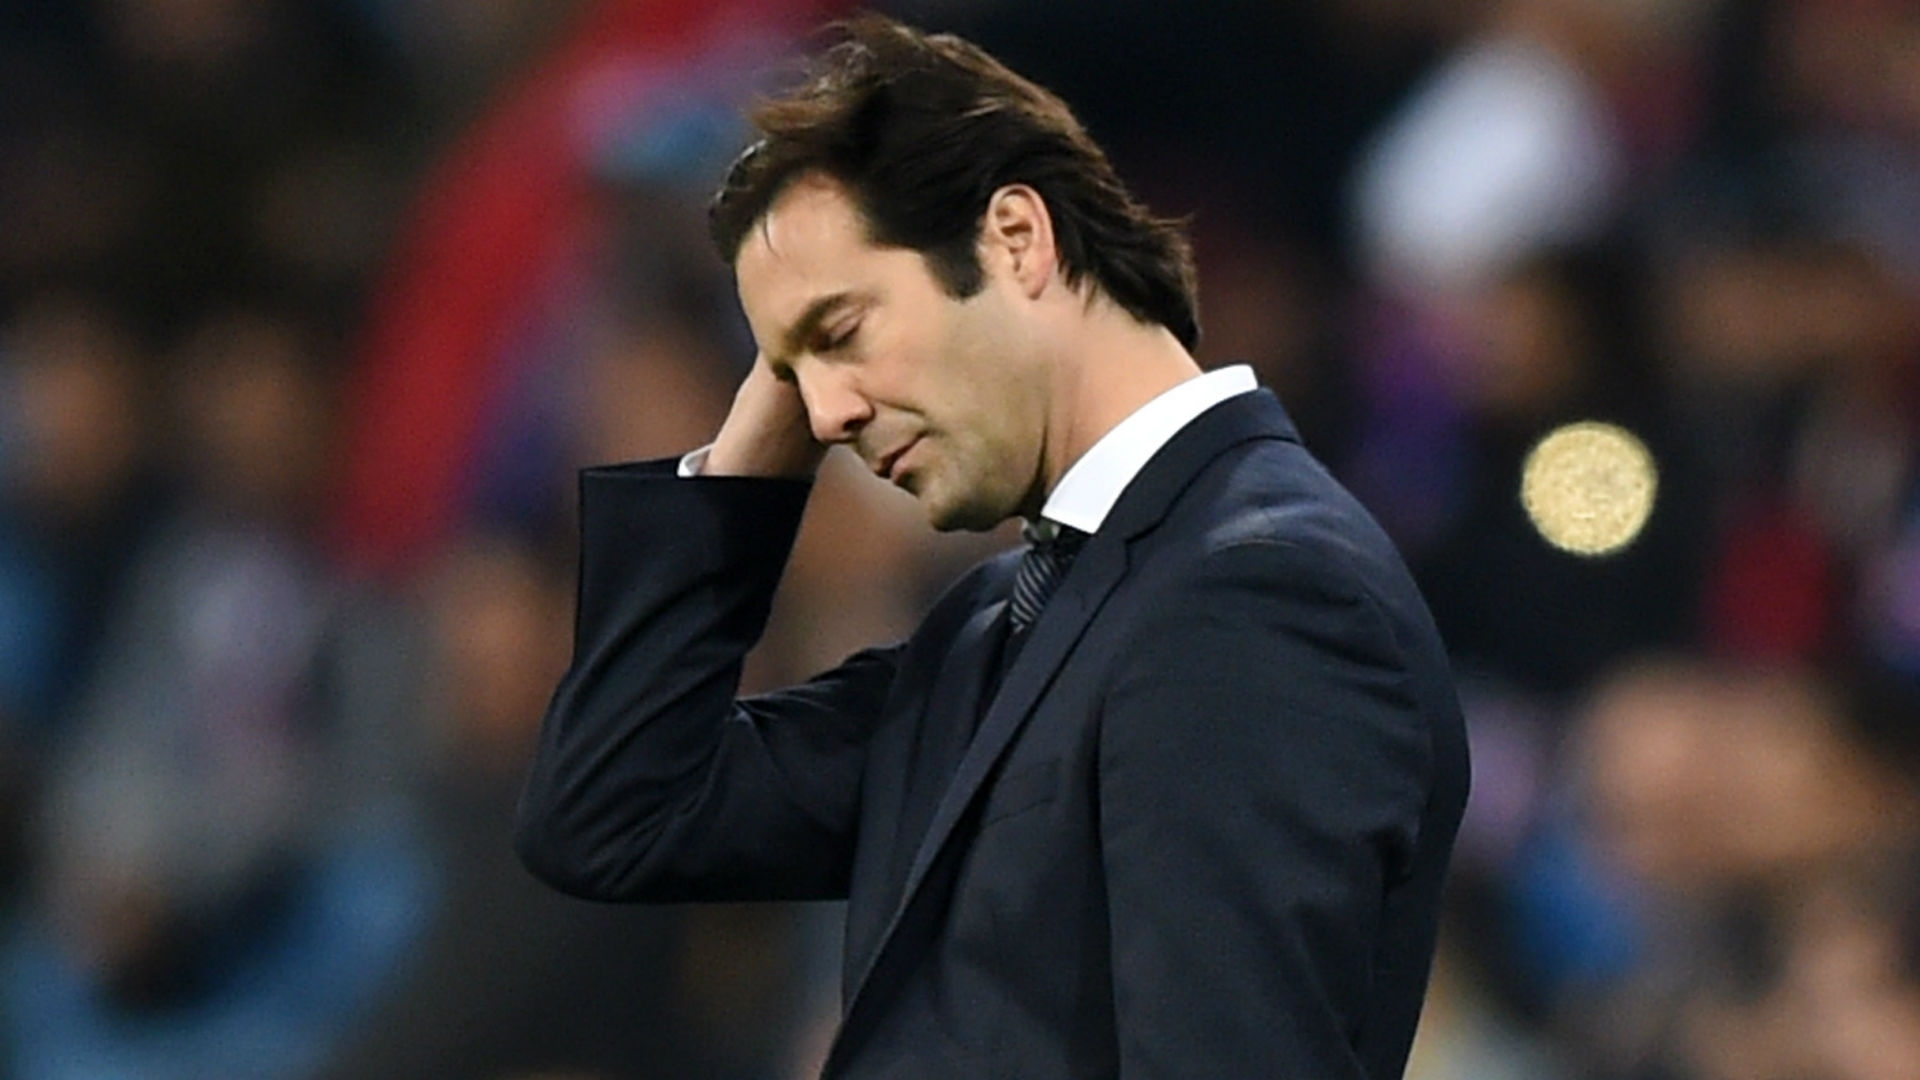 Solari - Real Madrid manager